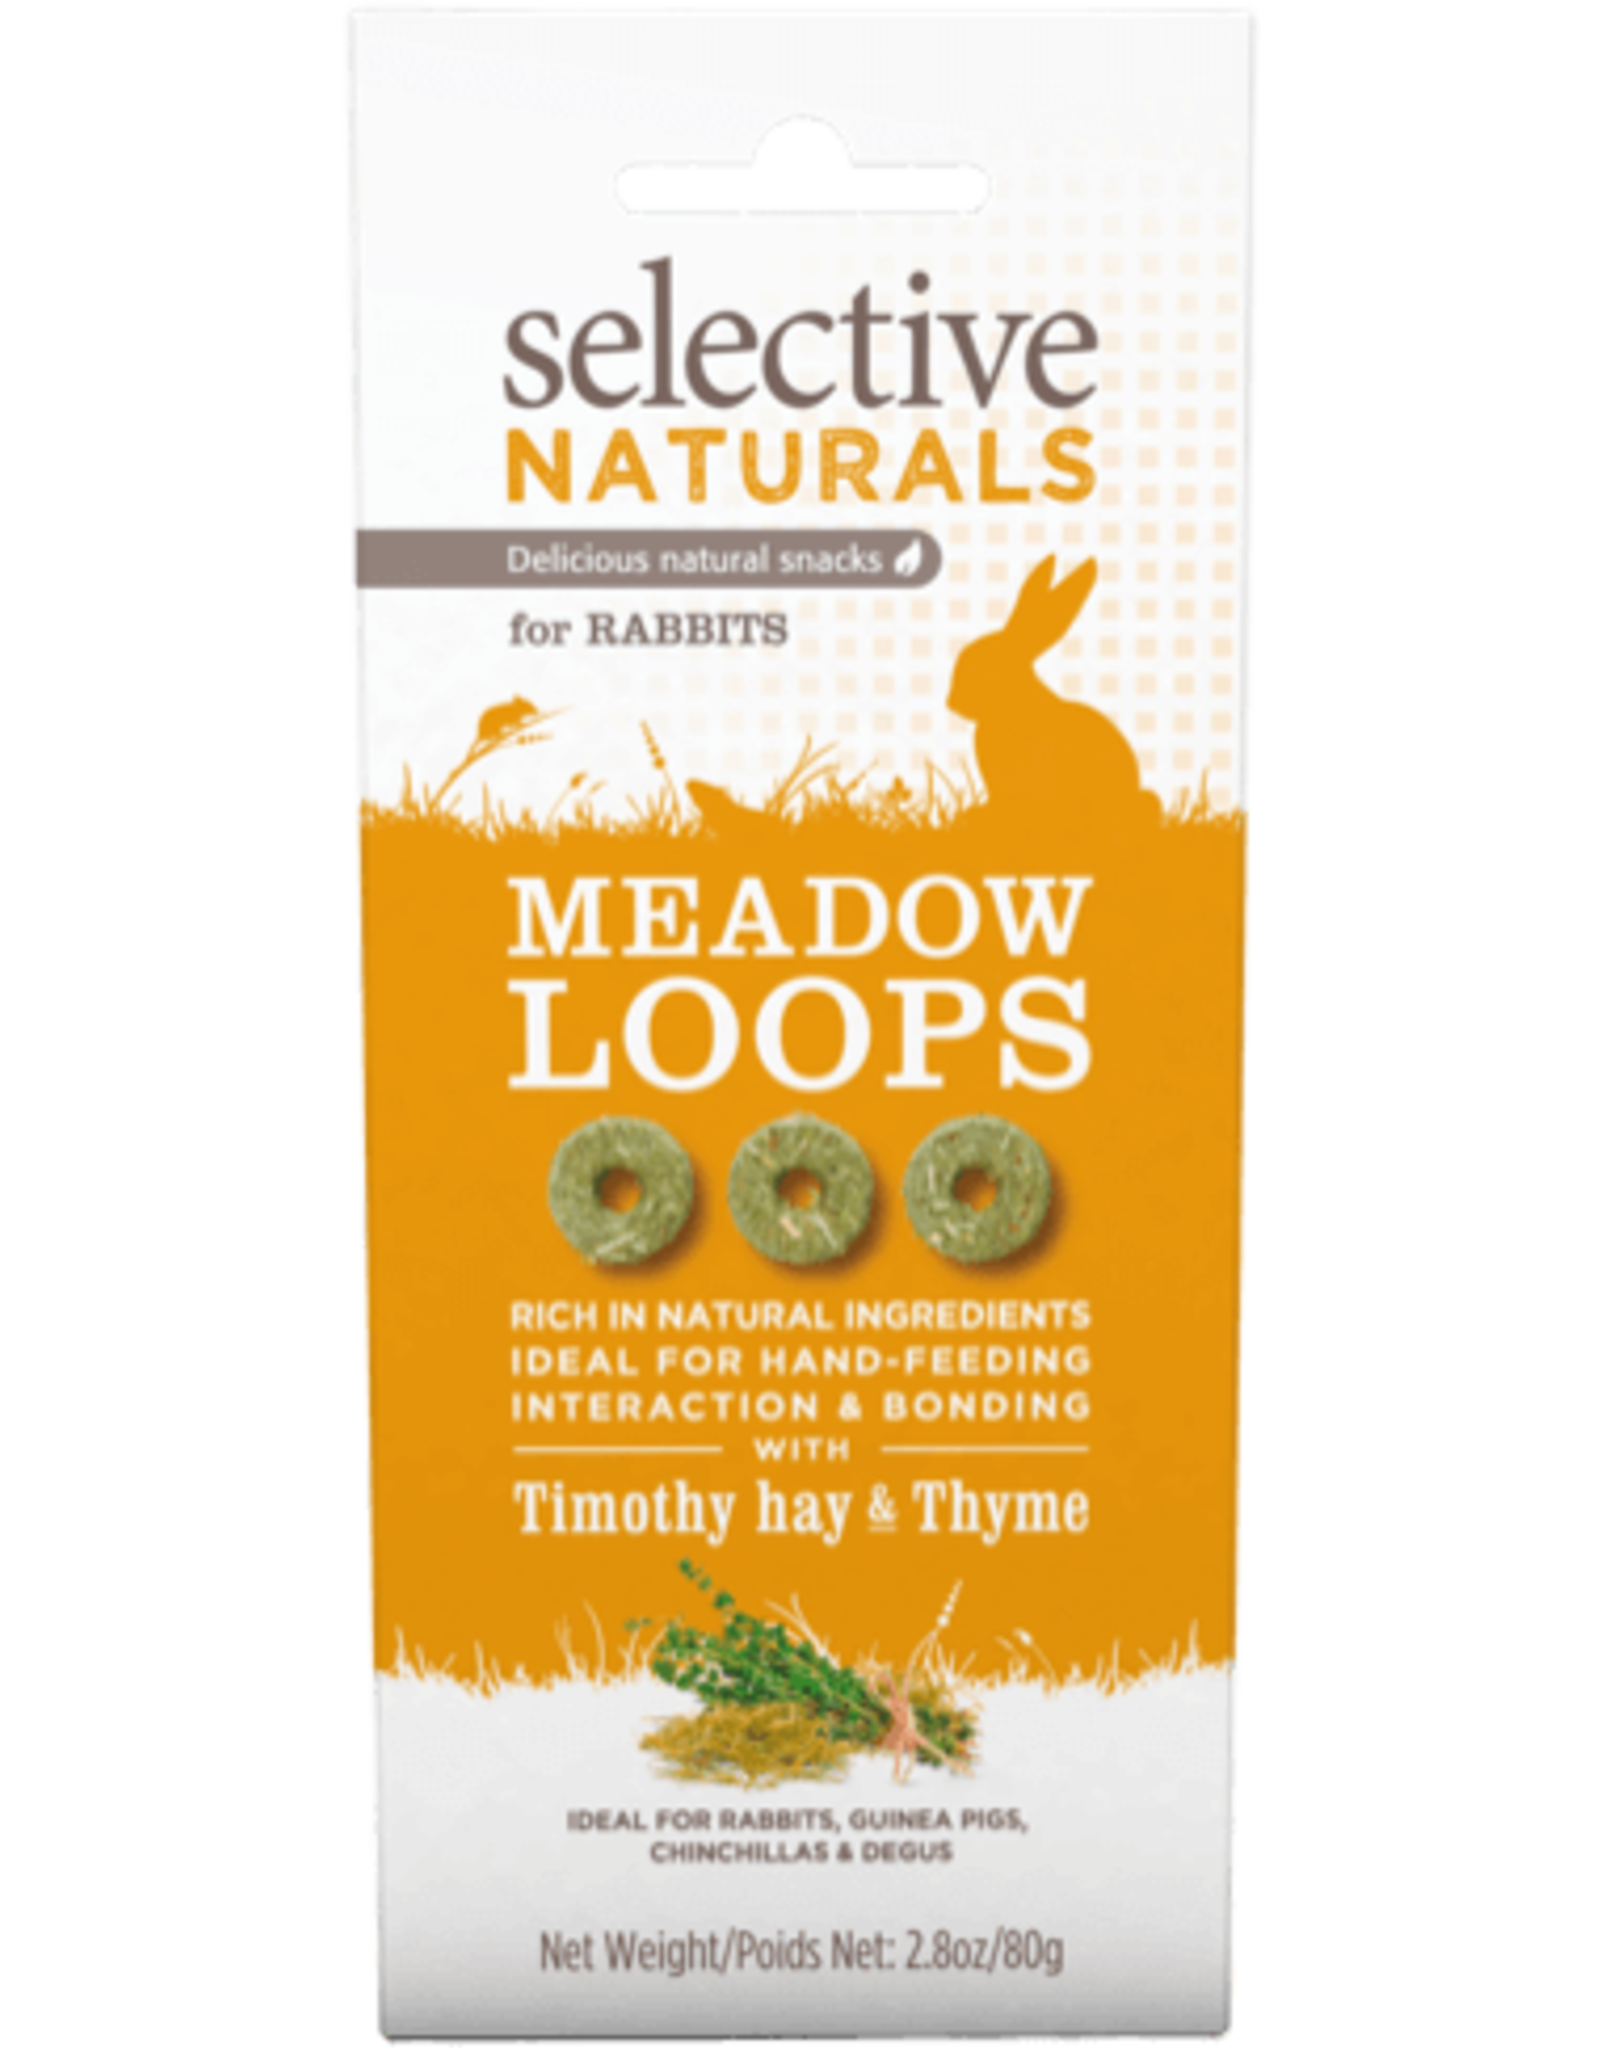 Supreme Pet Foods SELECTIVE NATURALS Meadow Loops Rabbit Treats Timothy Hay & Thyme